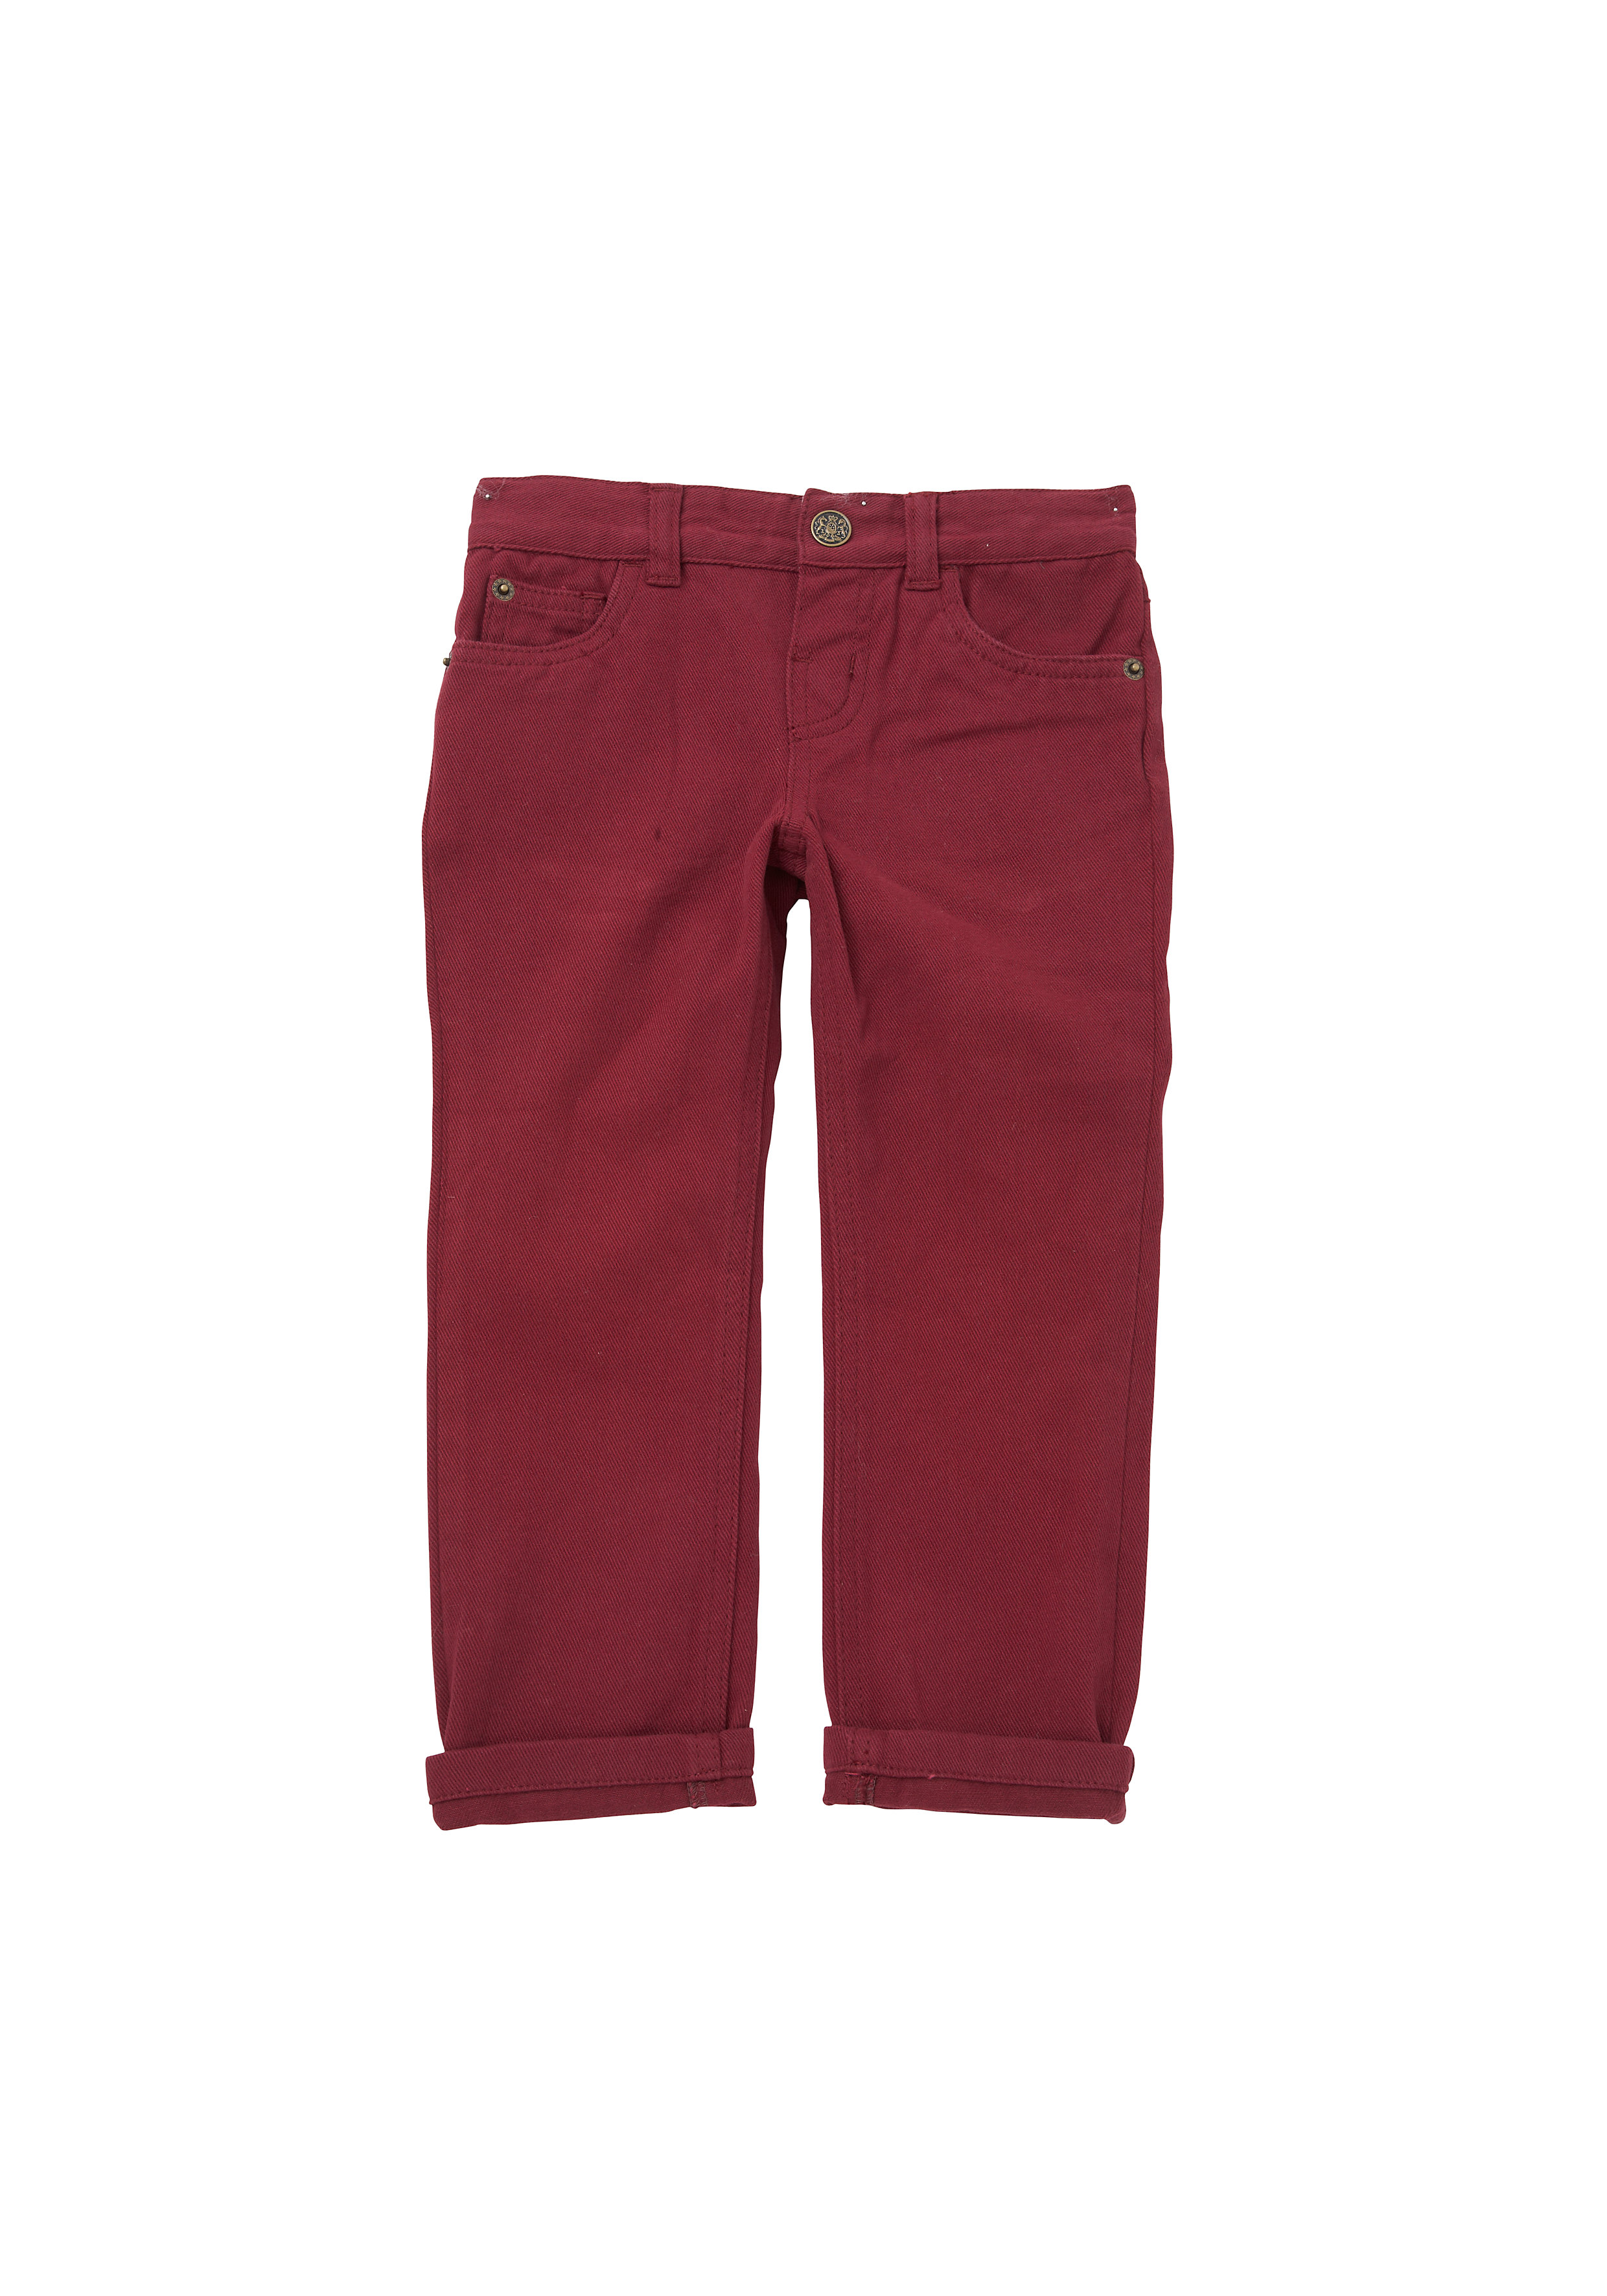 Mothercare | Boys Trousers - Burgundy